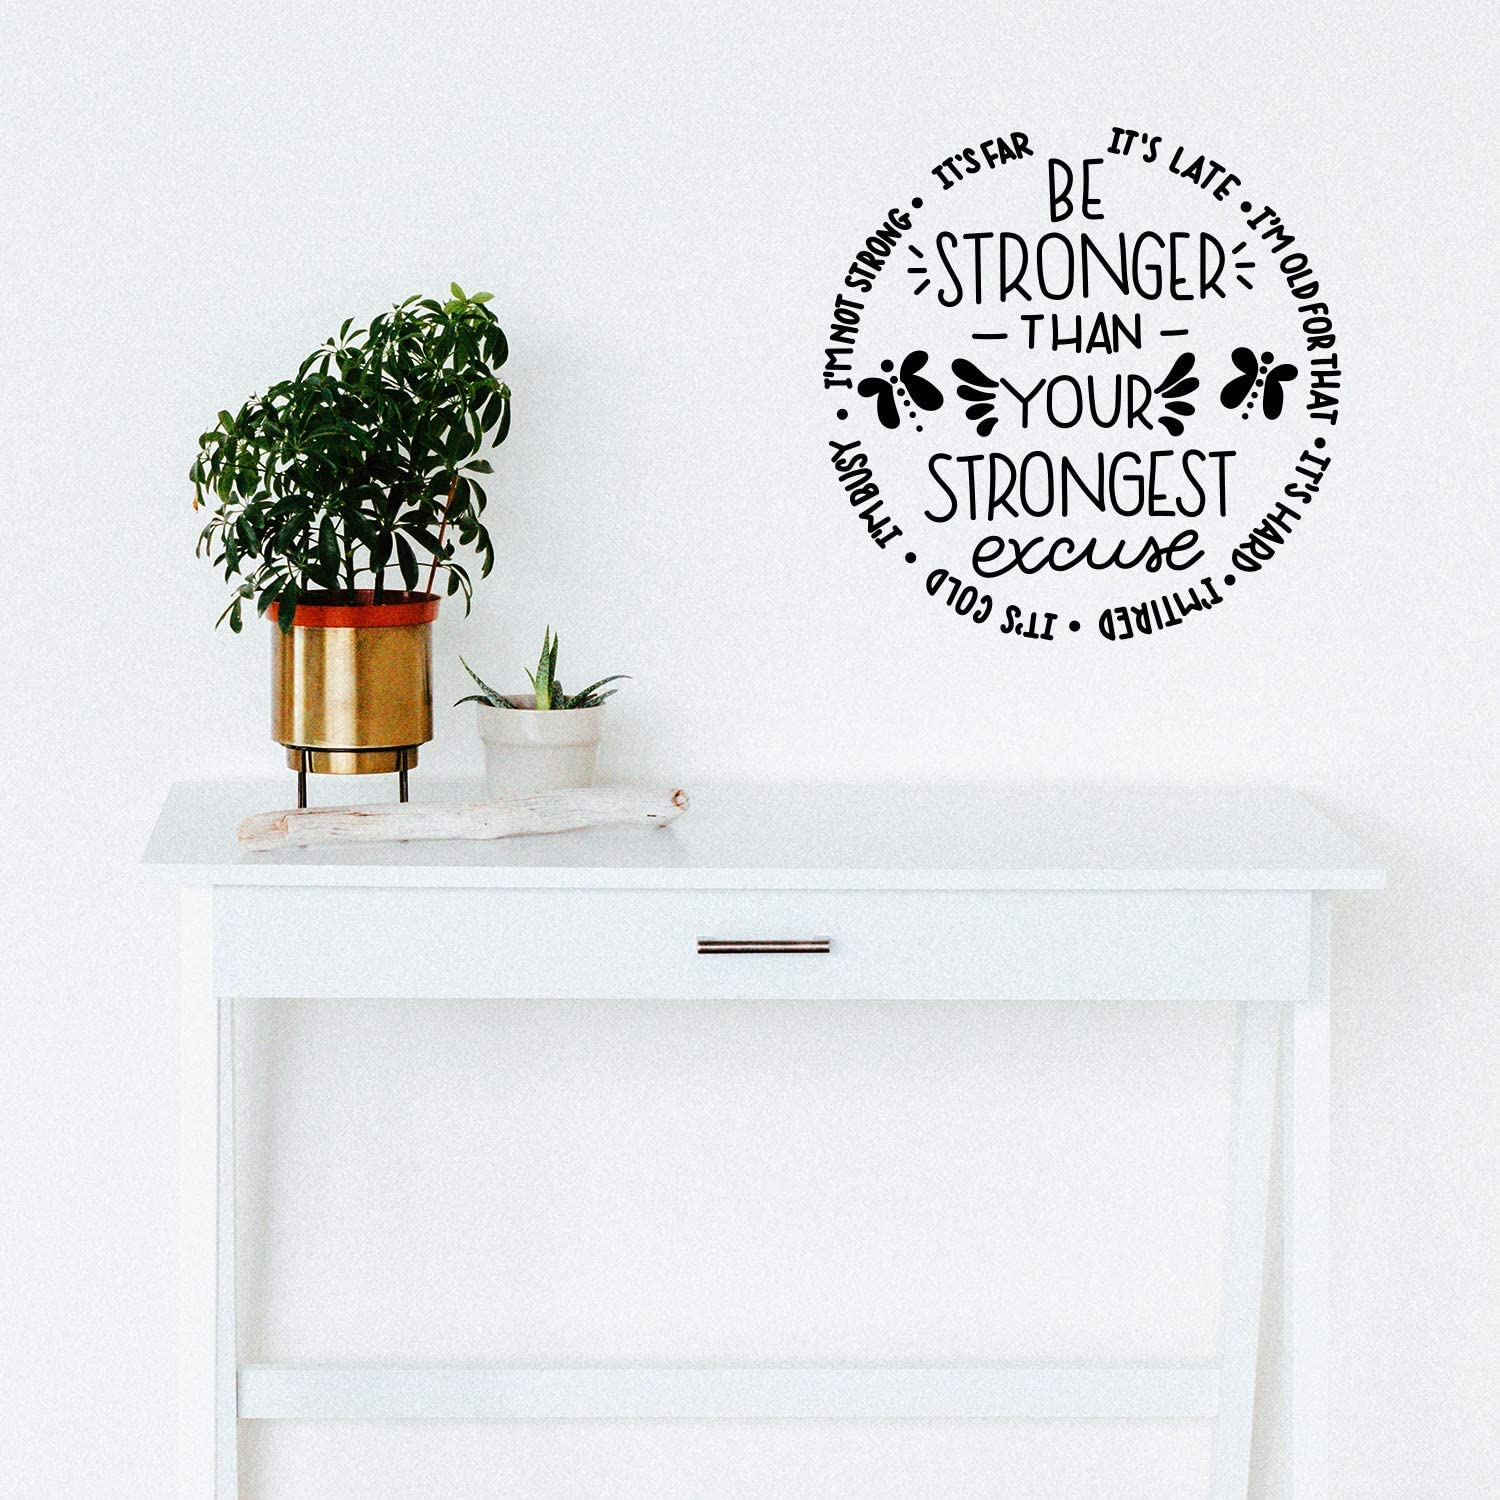 """Vinyl Wall Art Decal - Be Stronger Than Your Strongest Excuse - 17"""" x 17"""" - Trendy Cute Inspirational Positive Quote Sticker for Office Work Conference Room School Playroom Kids Room Bedroom Decor"""